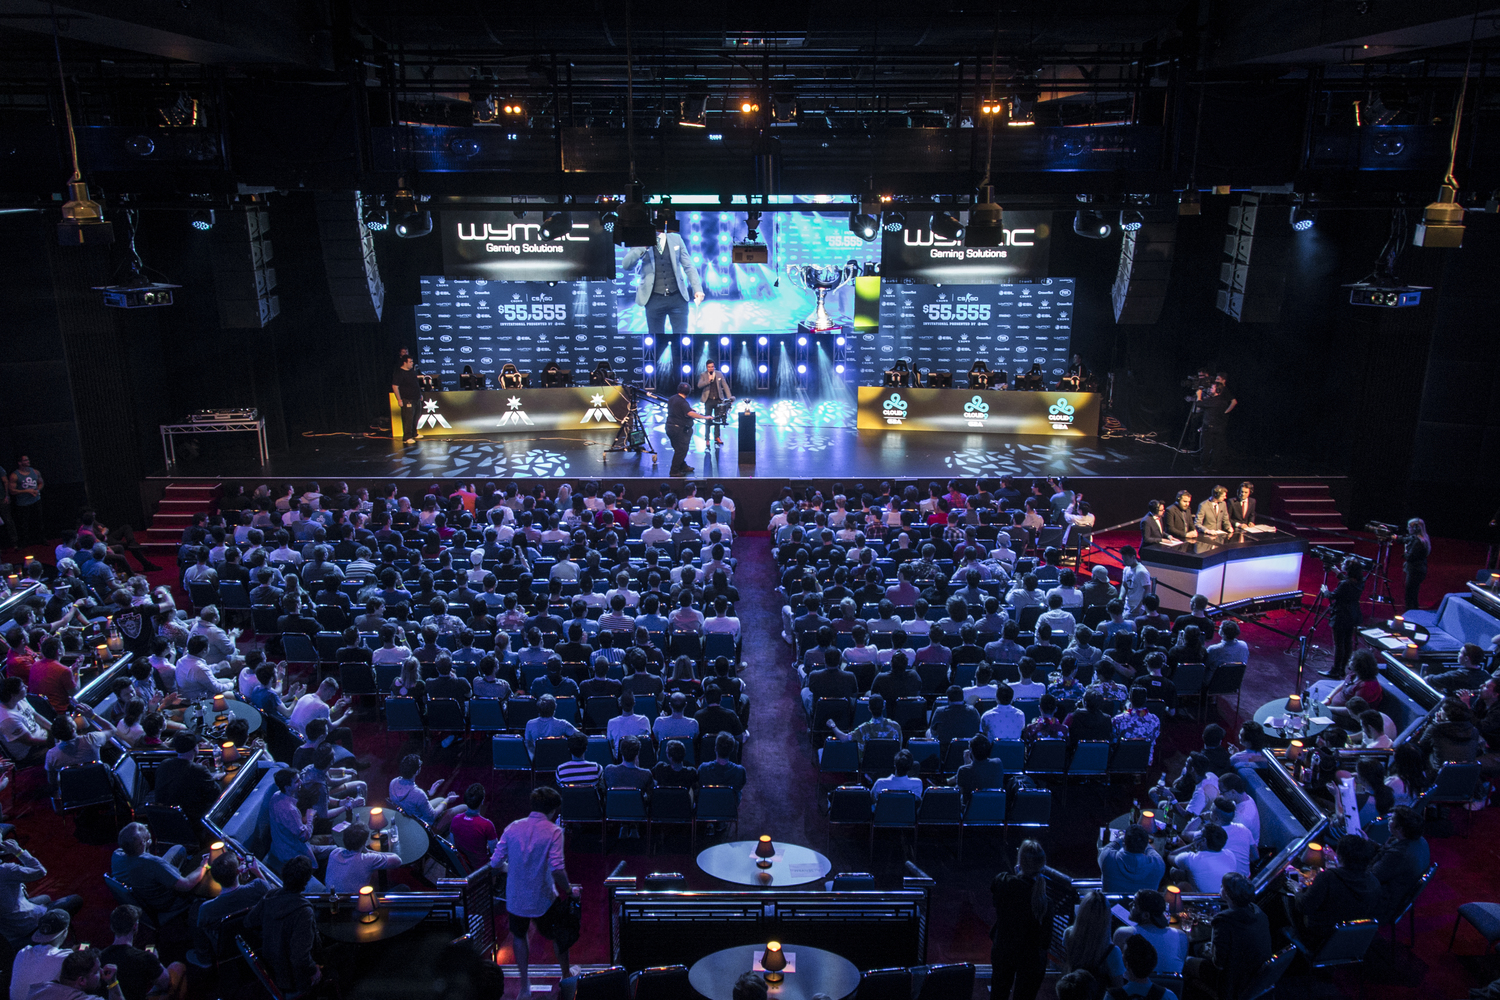 Crown's $55,555 CS:GO Invitational